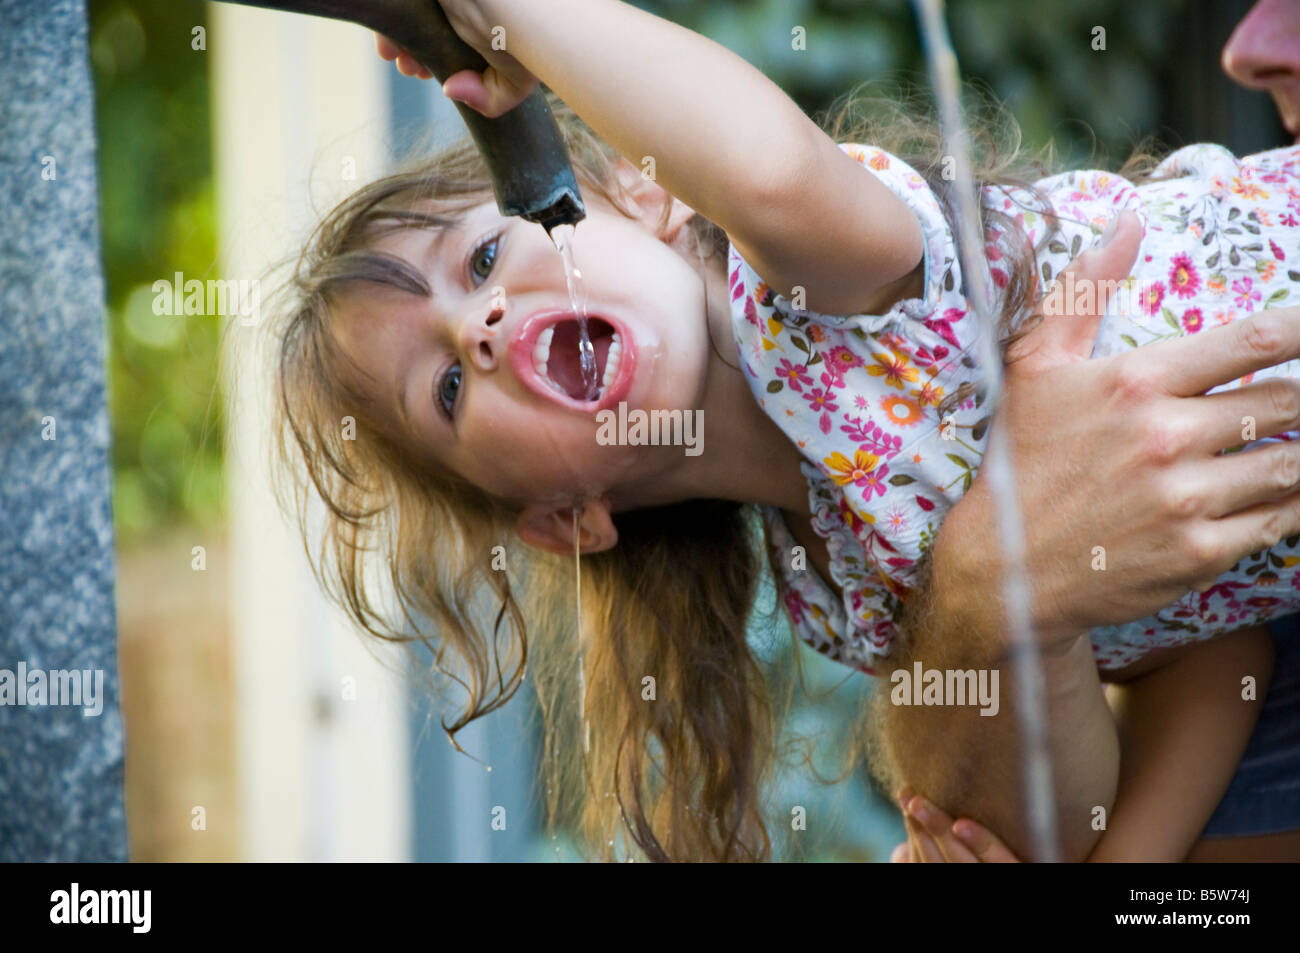 Girl being held while drinking water from a water fountain. Stock Photo